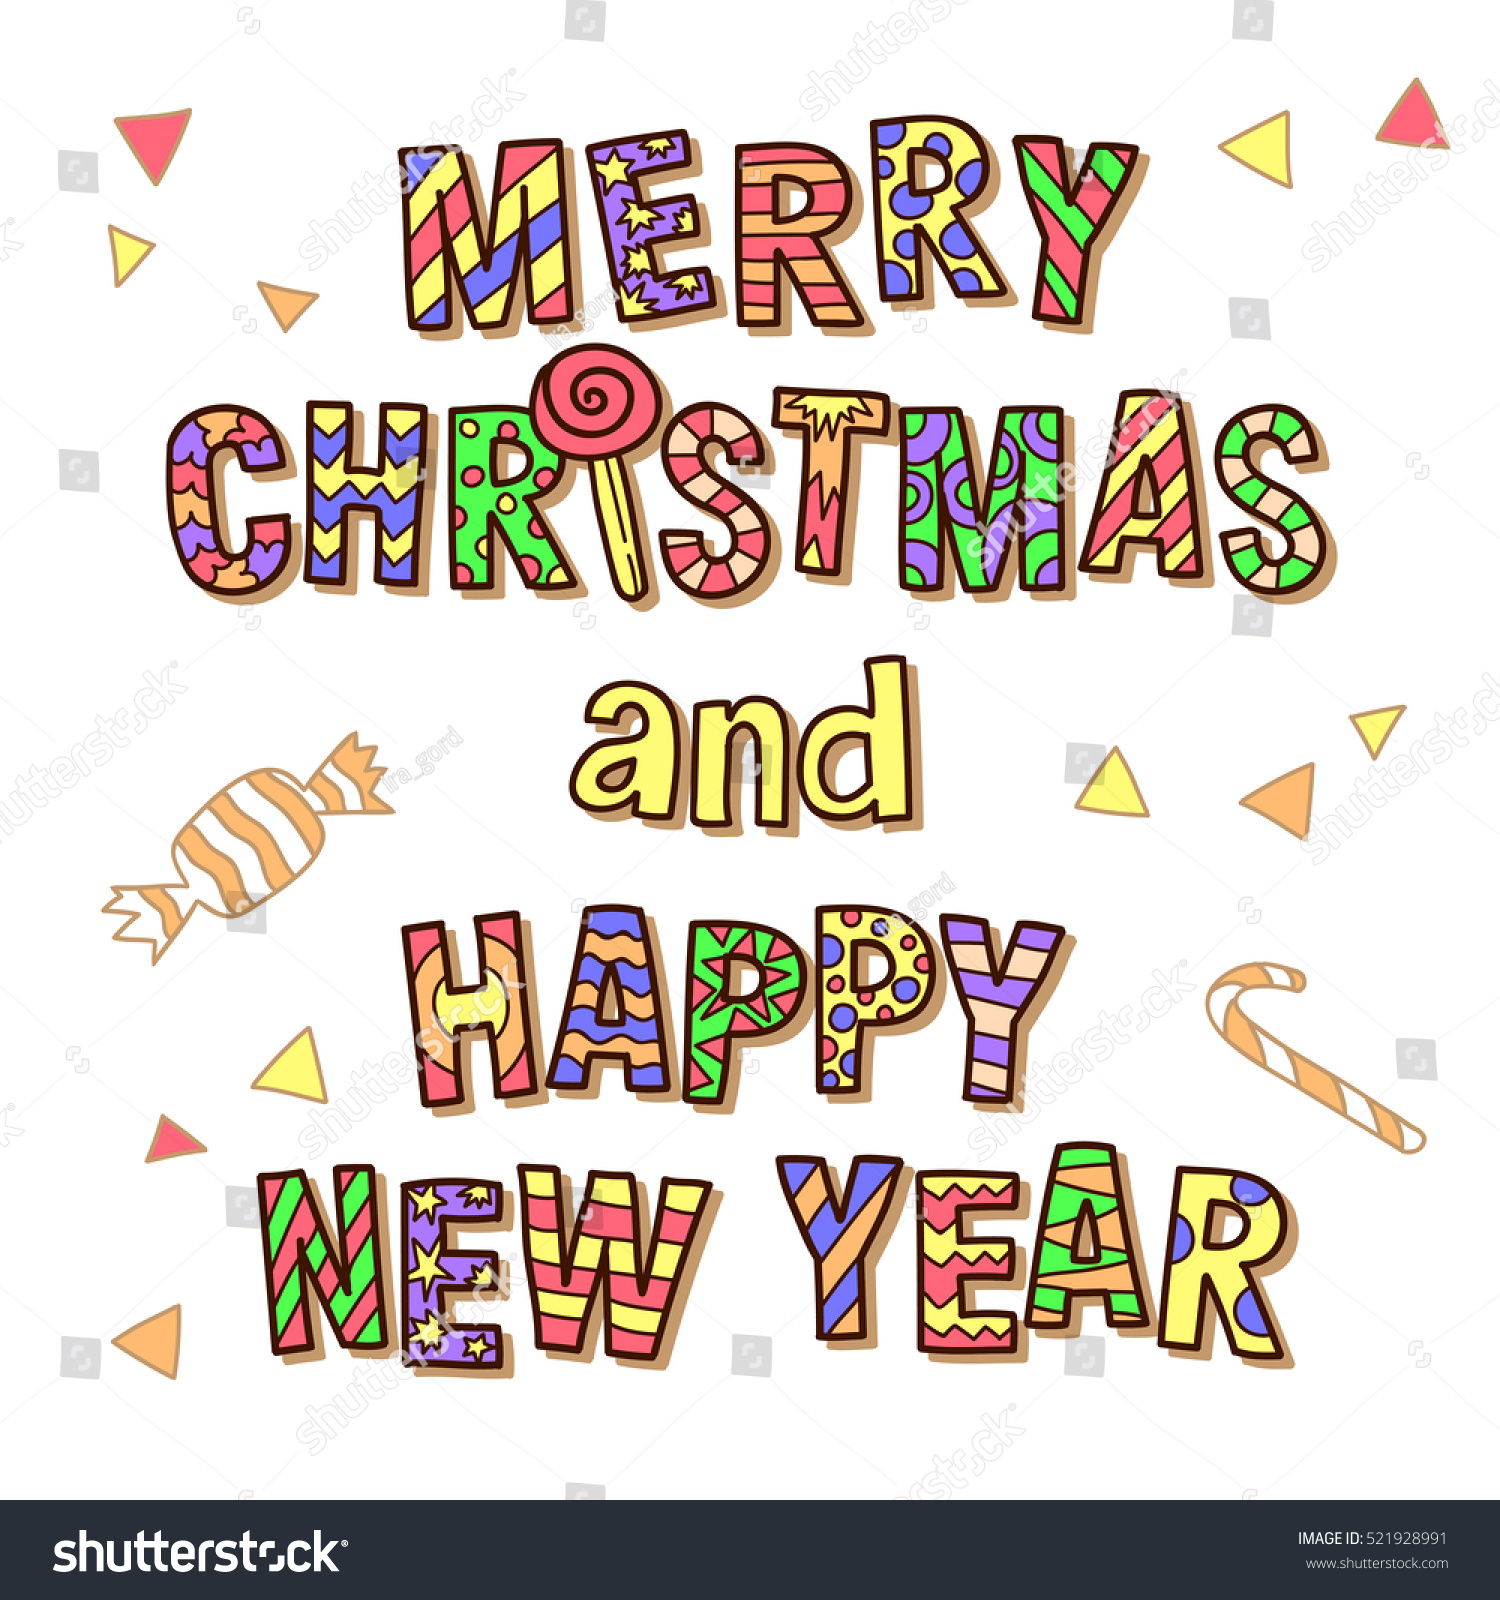 Merry Christmas Happy New Year Funny Stock Vector 521928991 ...